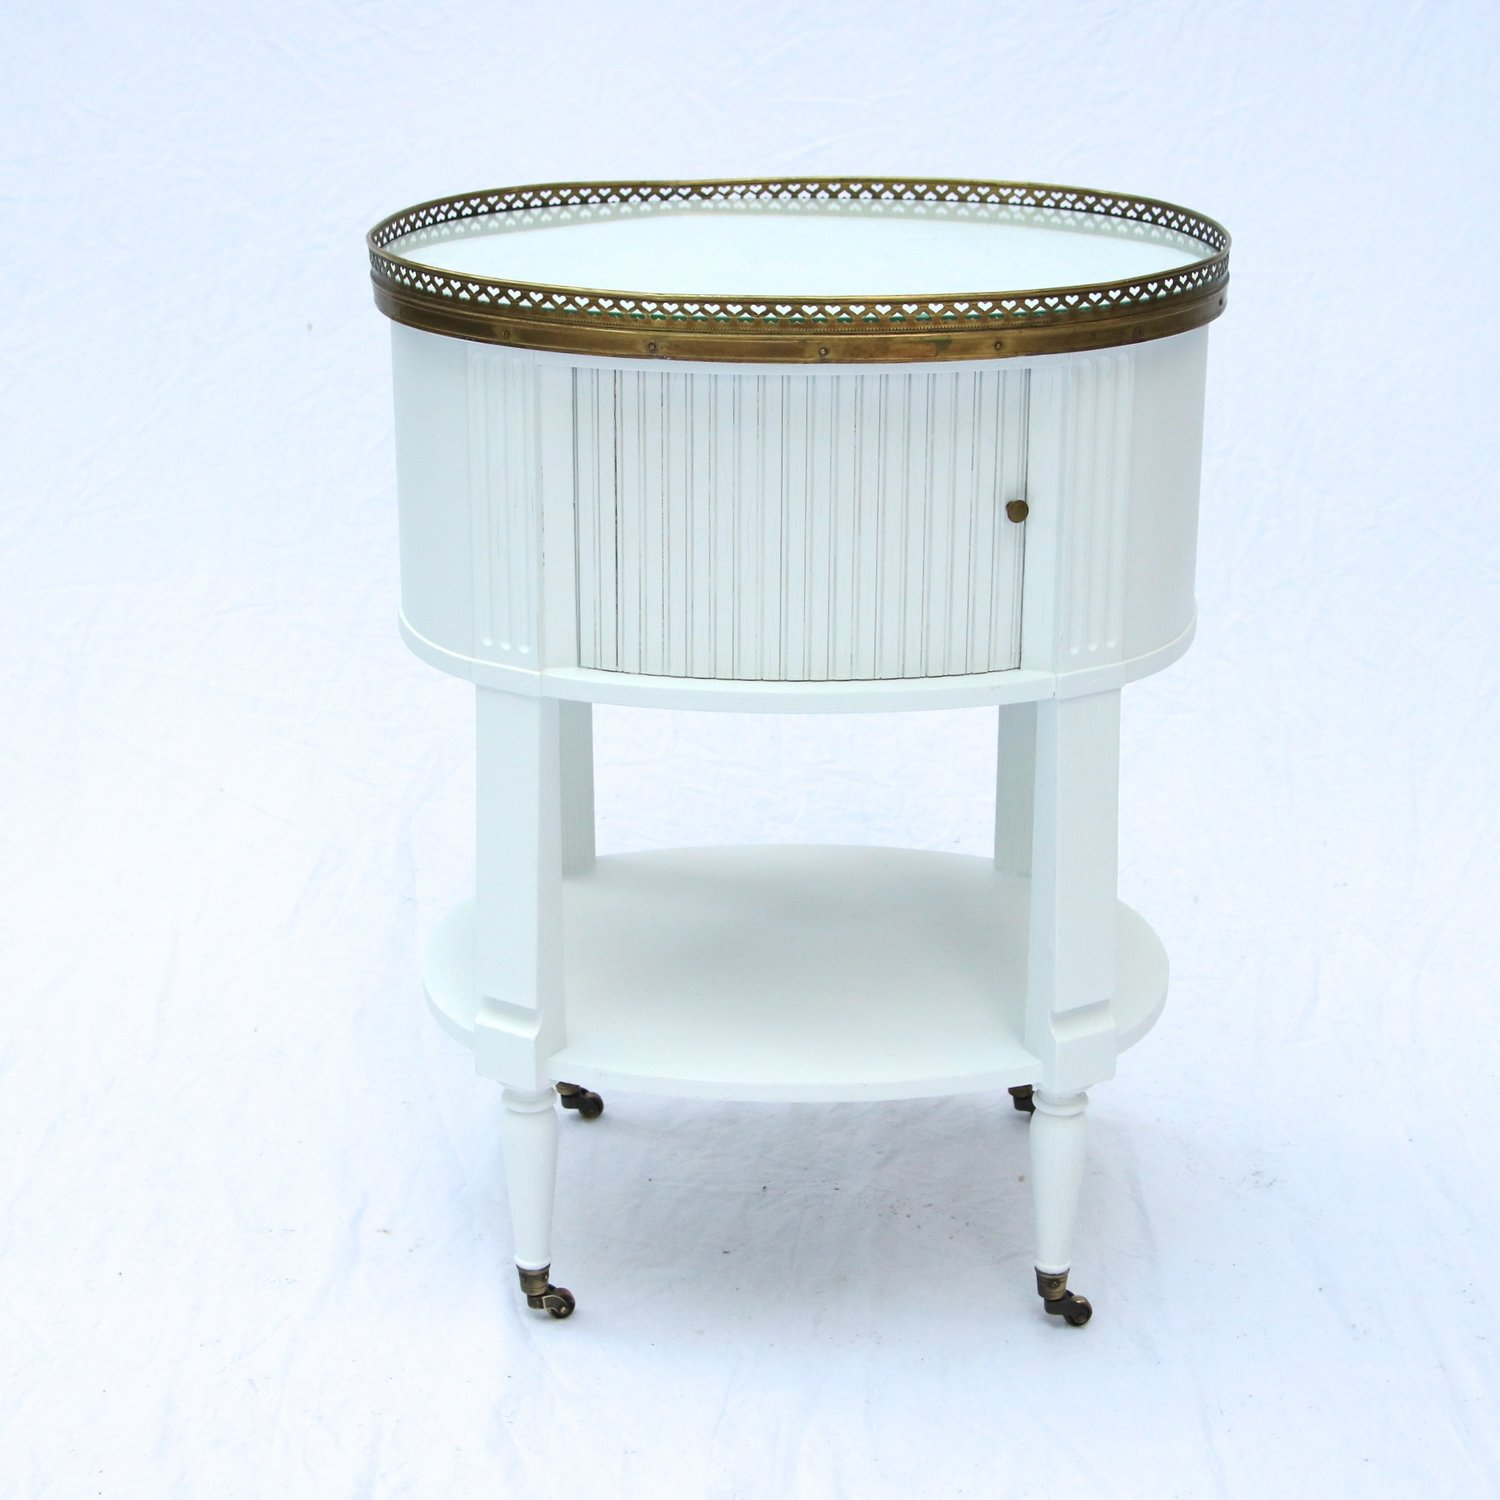 A Baker Louis Xvi Style Oval Gueridon Side Table Tambour Brass